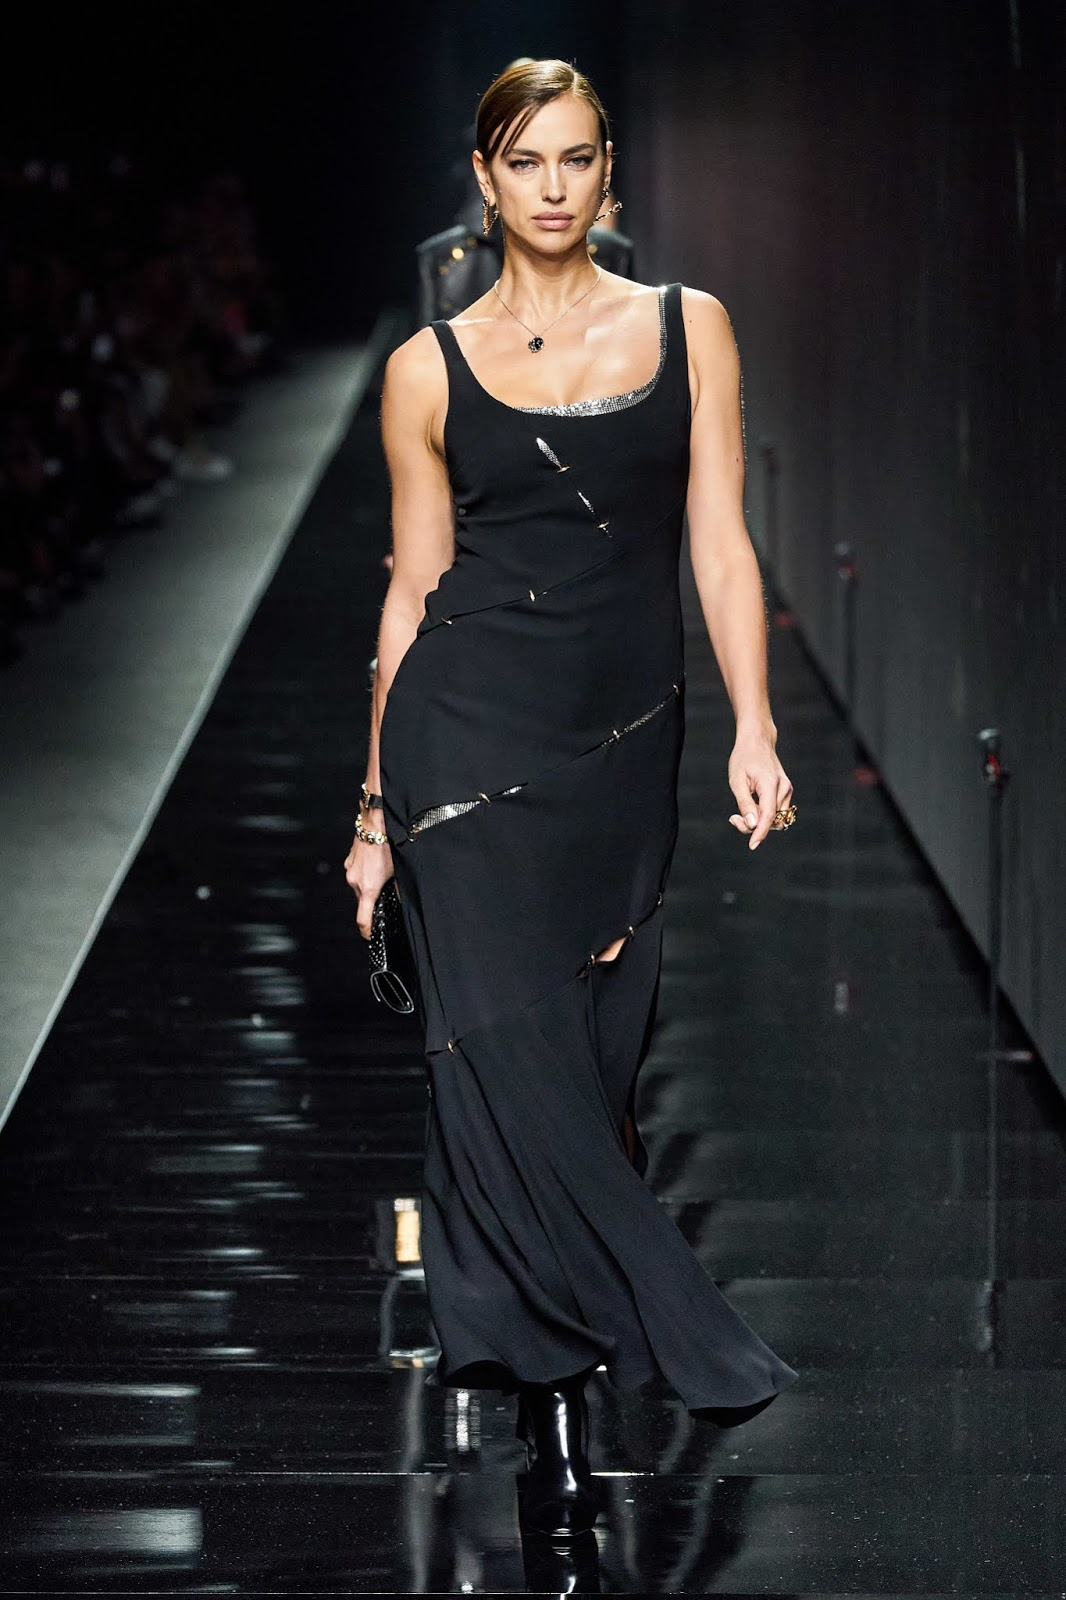 Irina Shayk sashayed down the Versace Fall/Winter 2020 Runway in a sultry black dress